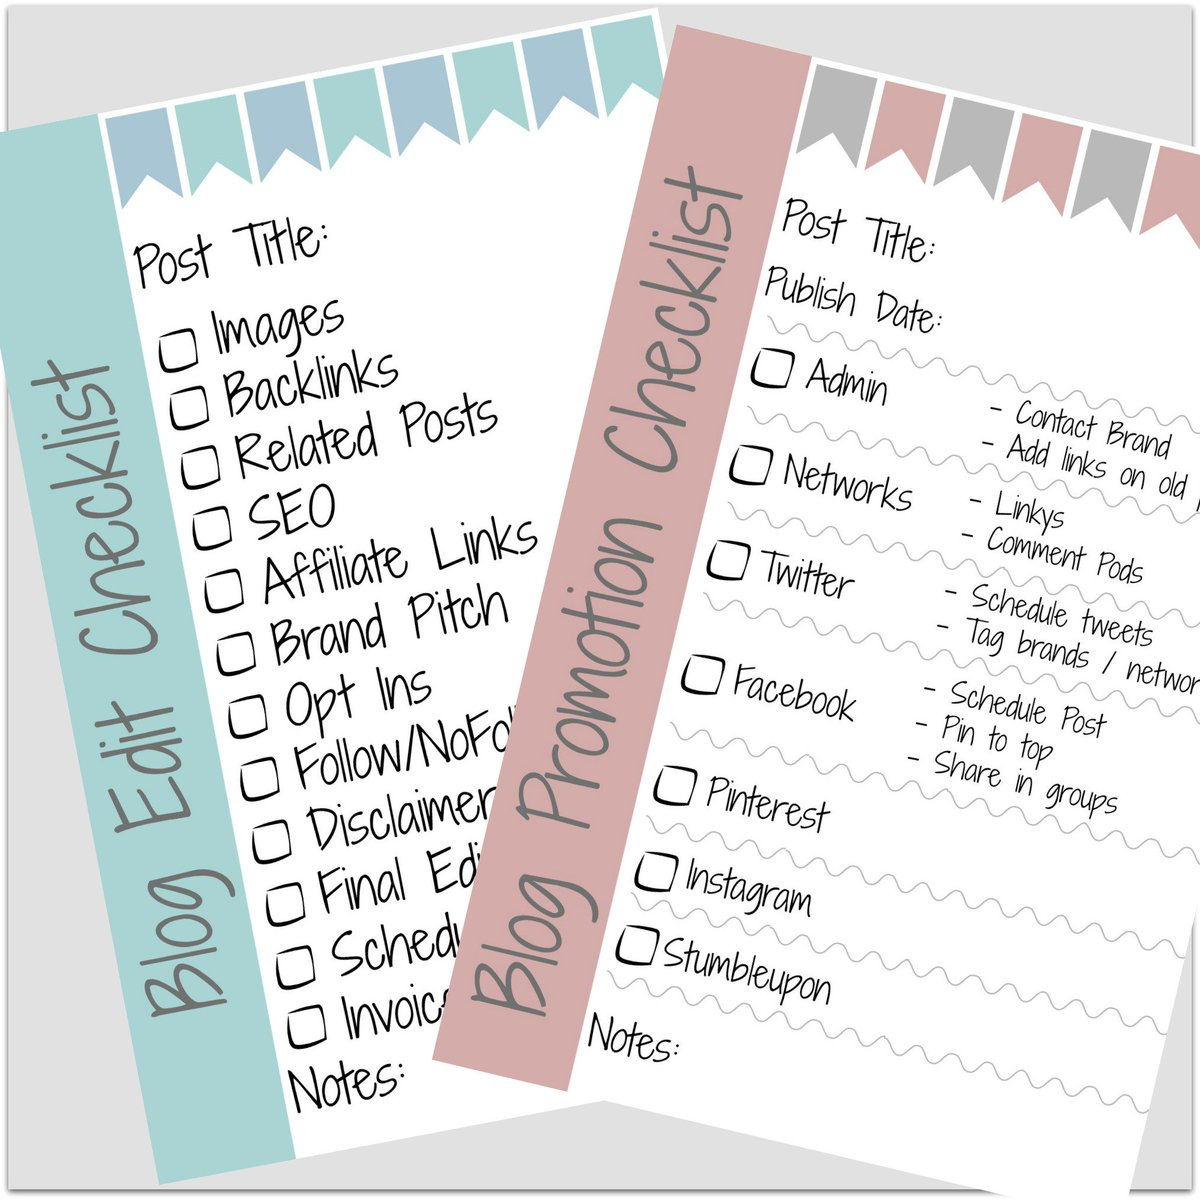 Your blogging checklist with FREE printables   https:// wp.me/p5IvQd-2I3  &nbsp;   #bloggingtips <br>http://pic.twitter.com/6YLjuqWlH7